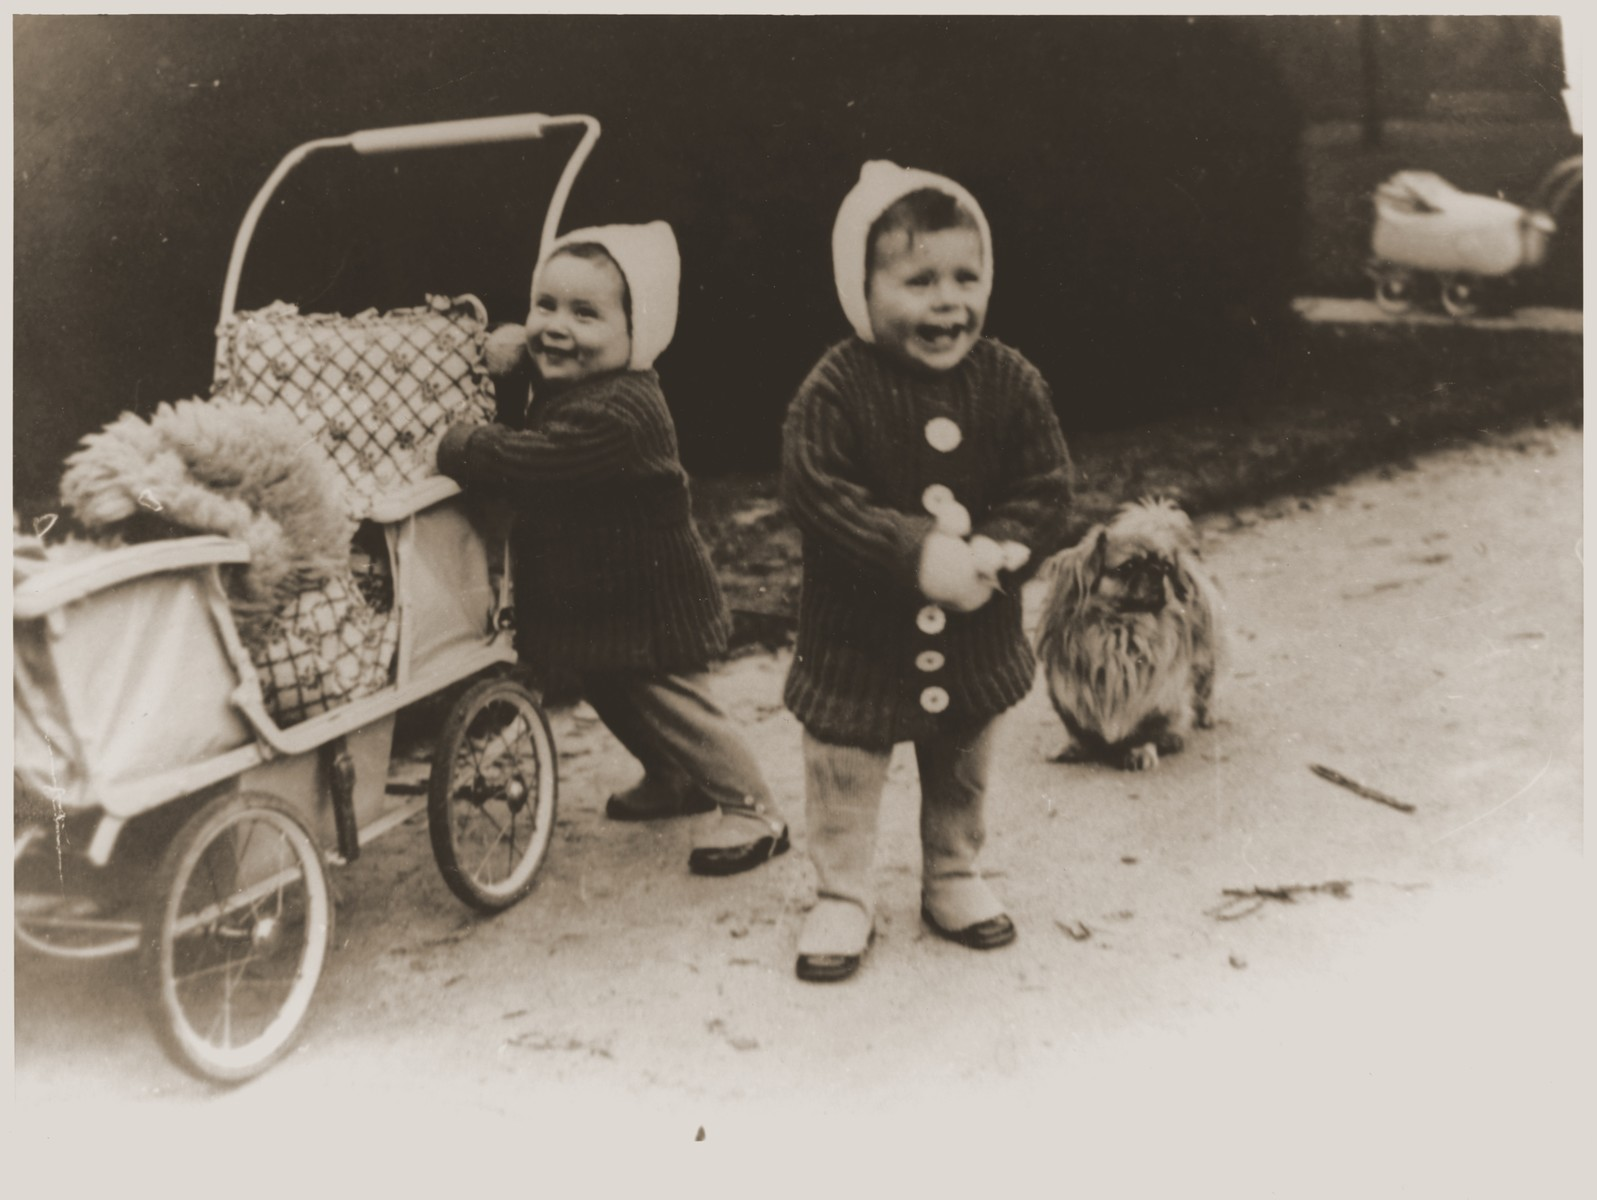 Two year old twins Ellinor (now Eleanor Gerson) and Evelyn Perl (now Evelyn Pearl) at home in Berlin shortly before the family fled Germany.